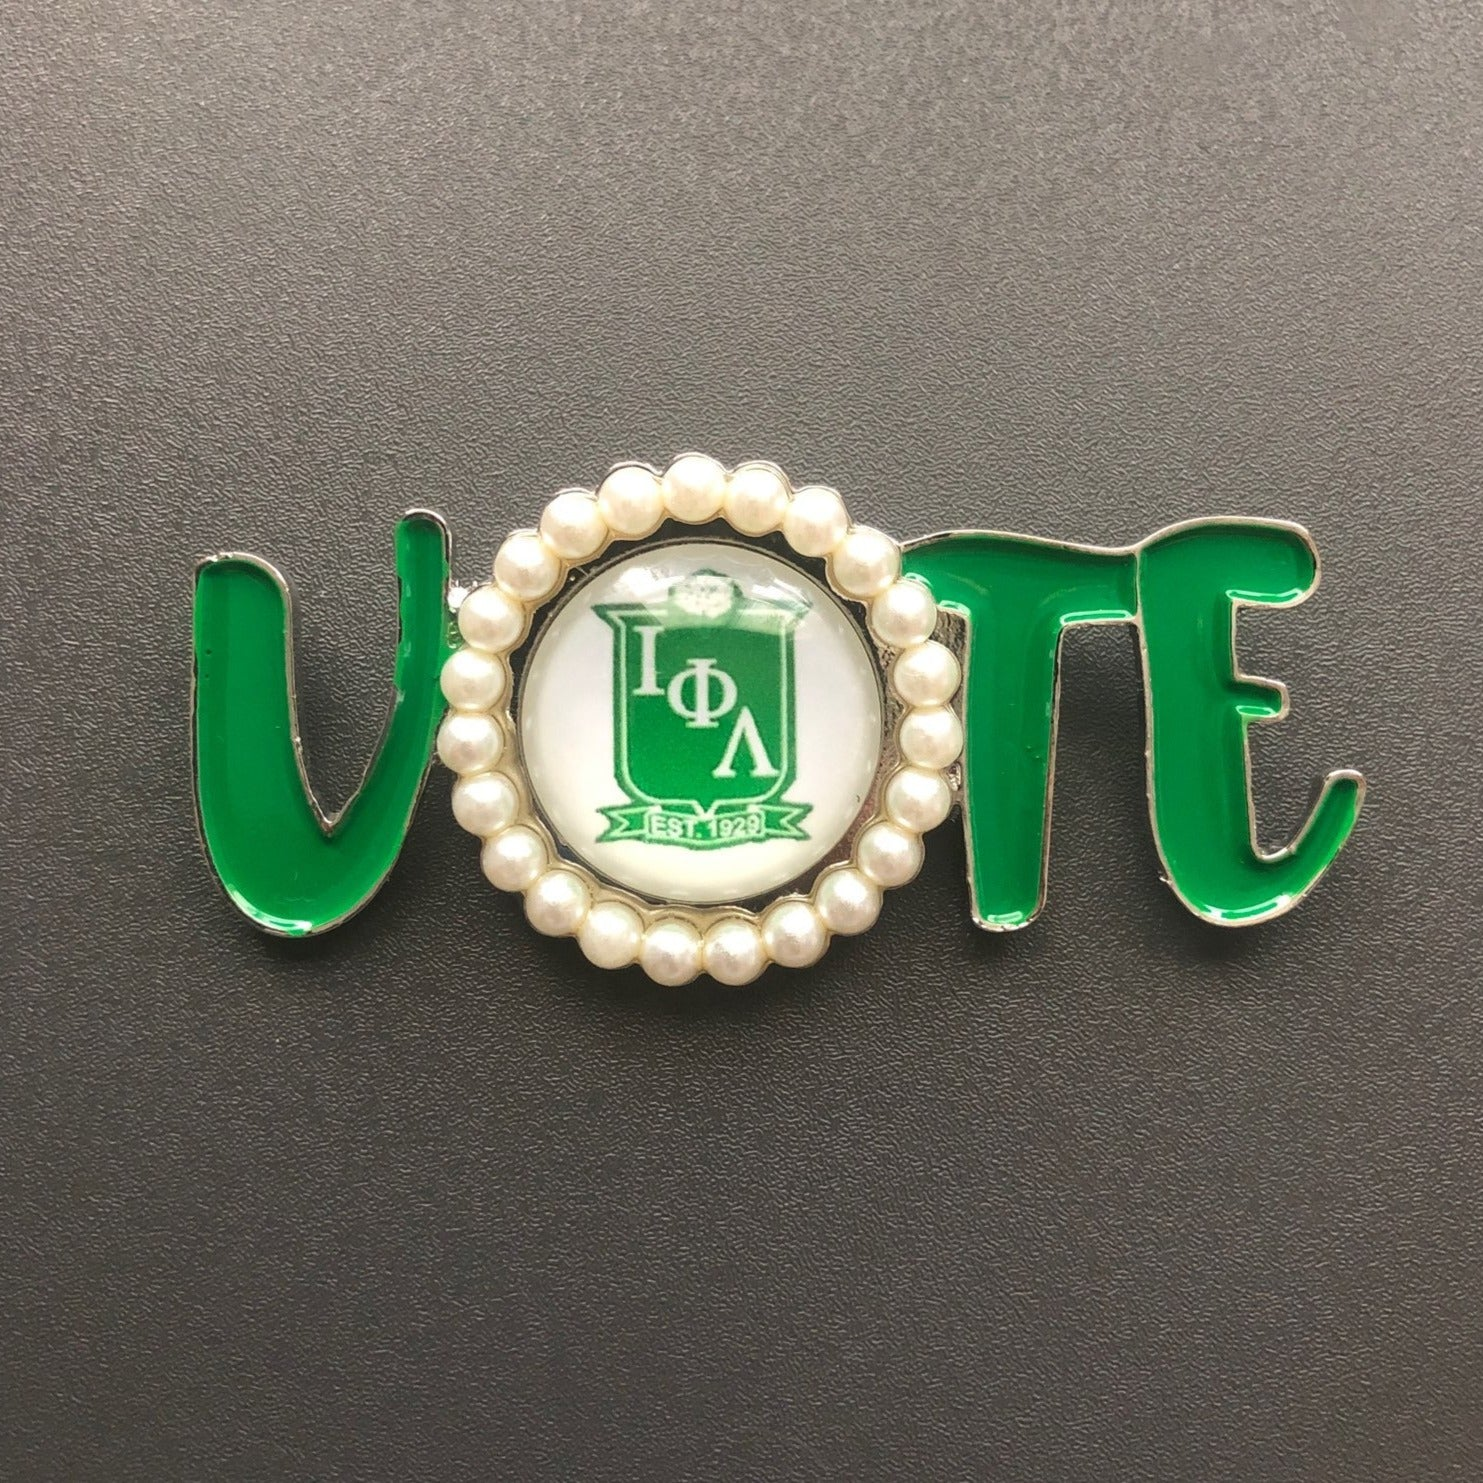 Iota Phi Lambda ΙΦΛ Vote with shield Lapel Pin Brooch Green/White Pearl